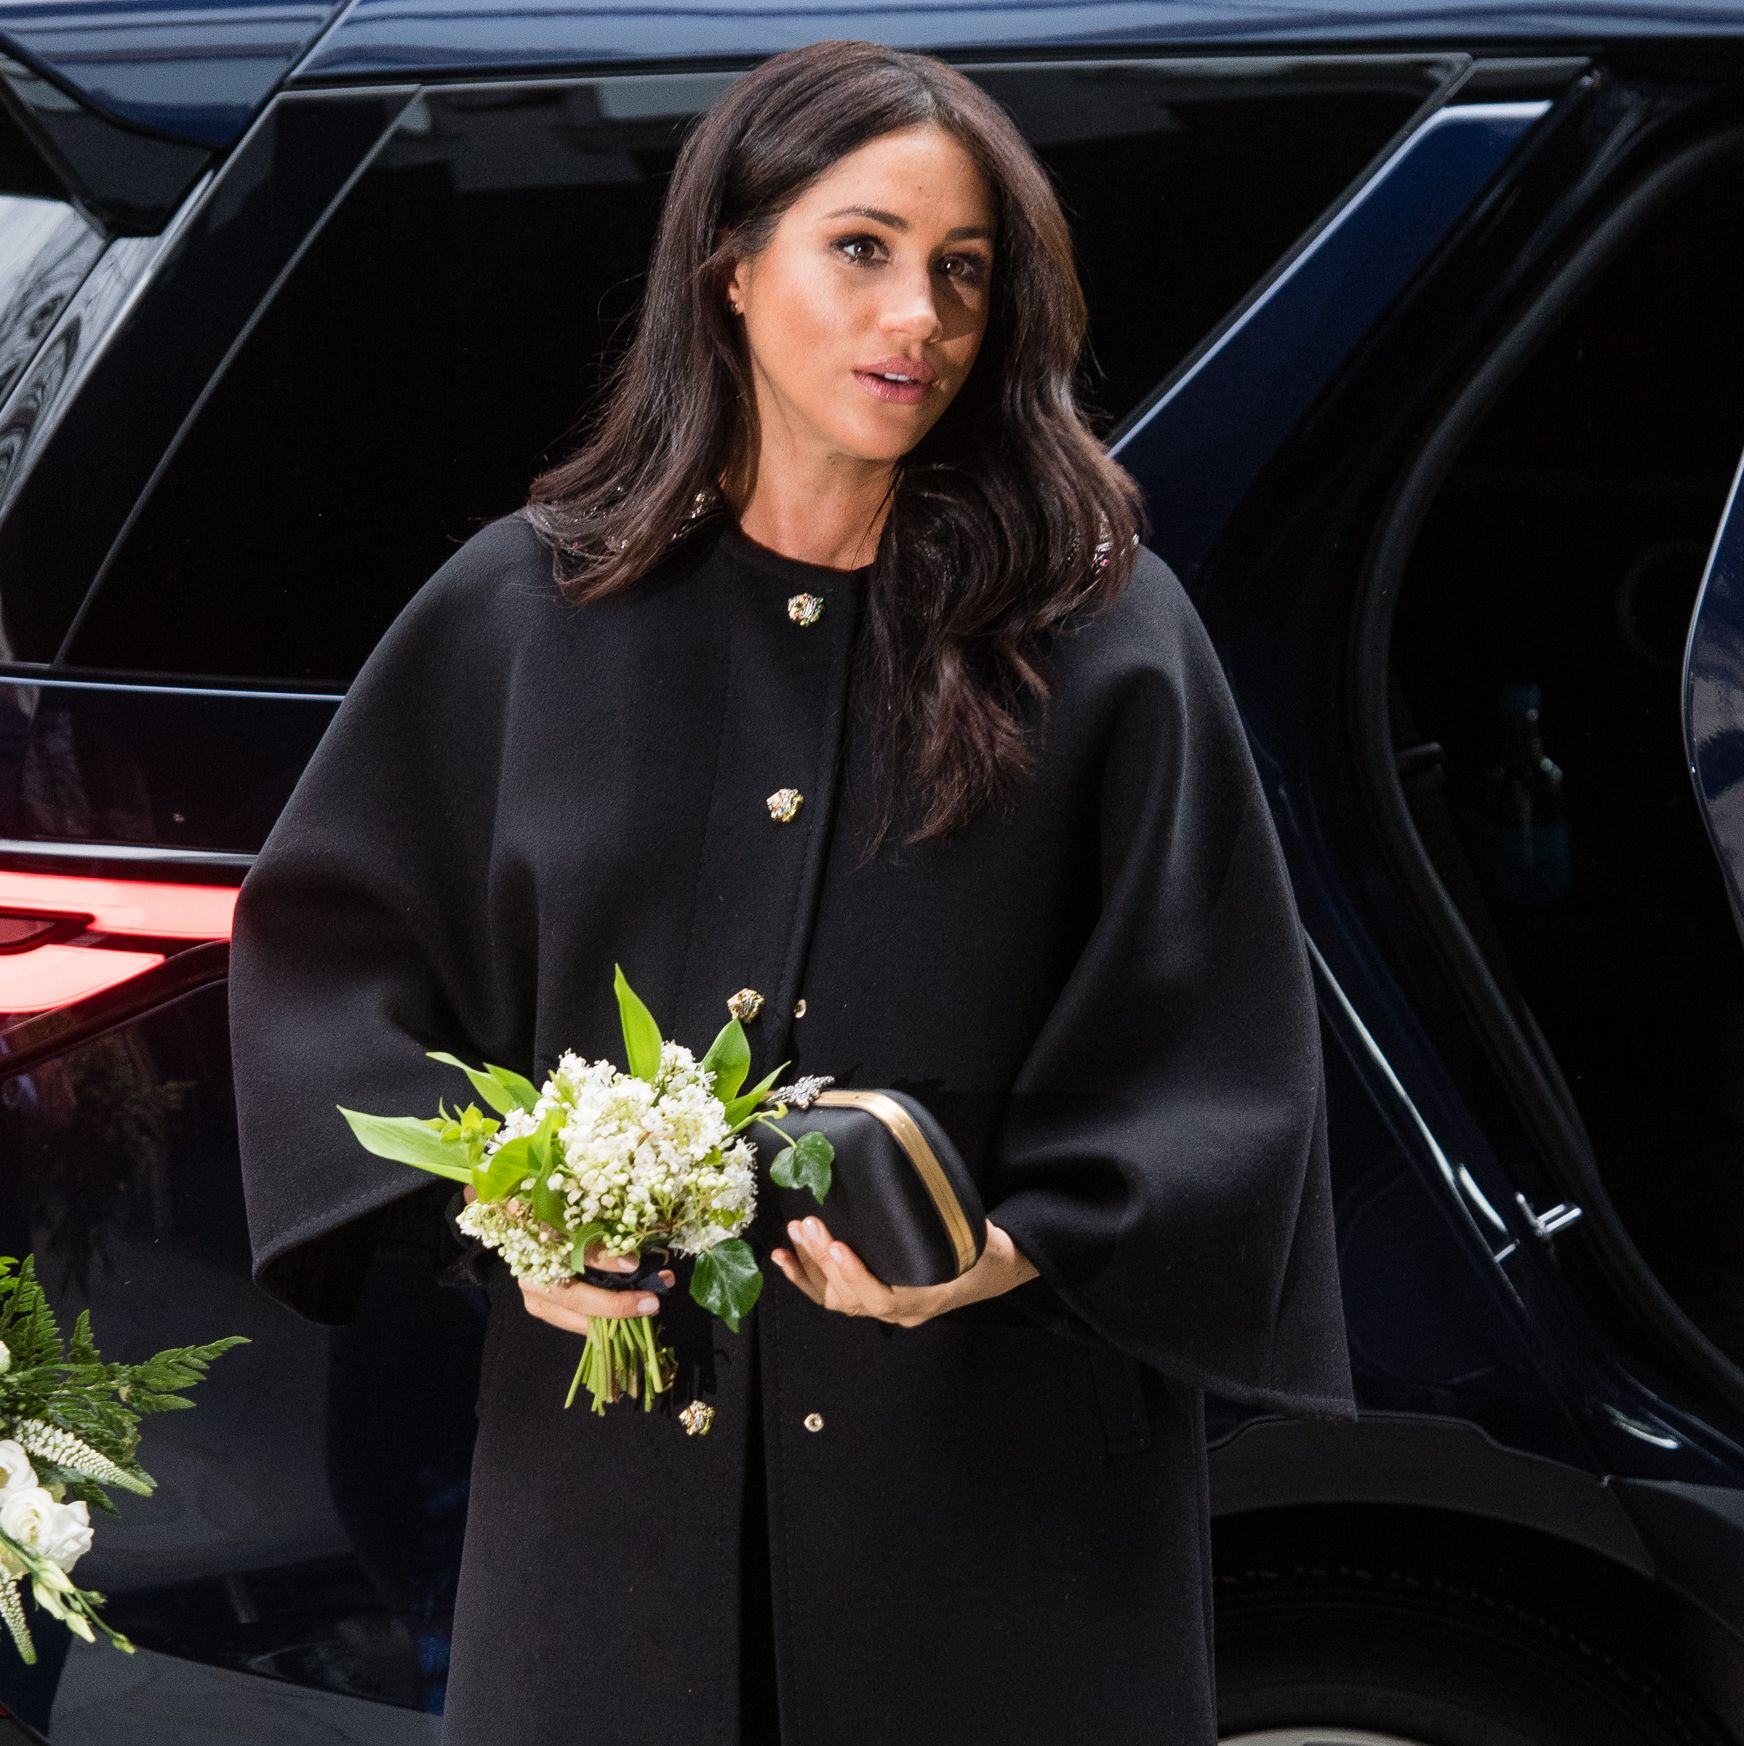 Meghan Markle and Prince Harry make unannounced visit to New Zealand house following the Christchurch terror attack